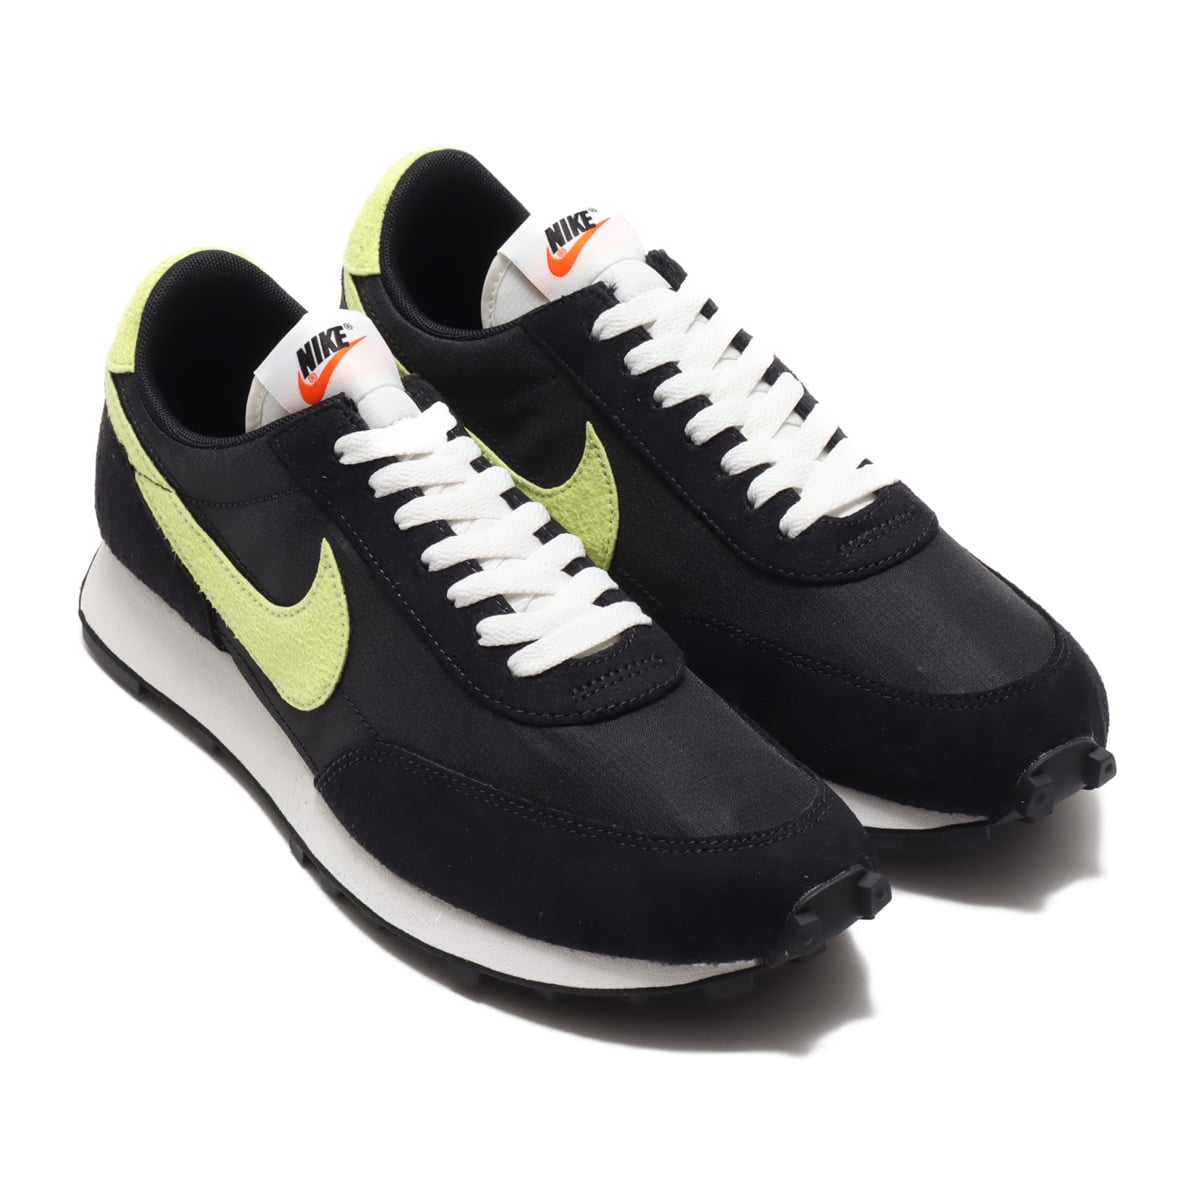 NIKE DBREAK SP BLACK/LIMELIGHT-OFF NOIR-SUMMIT WHITE 20FA-S_photo_large